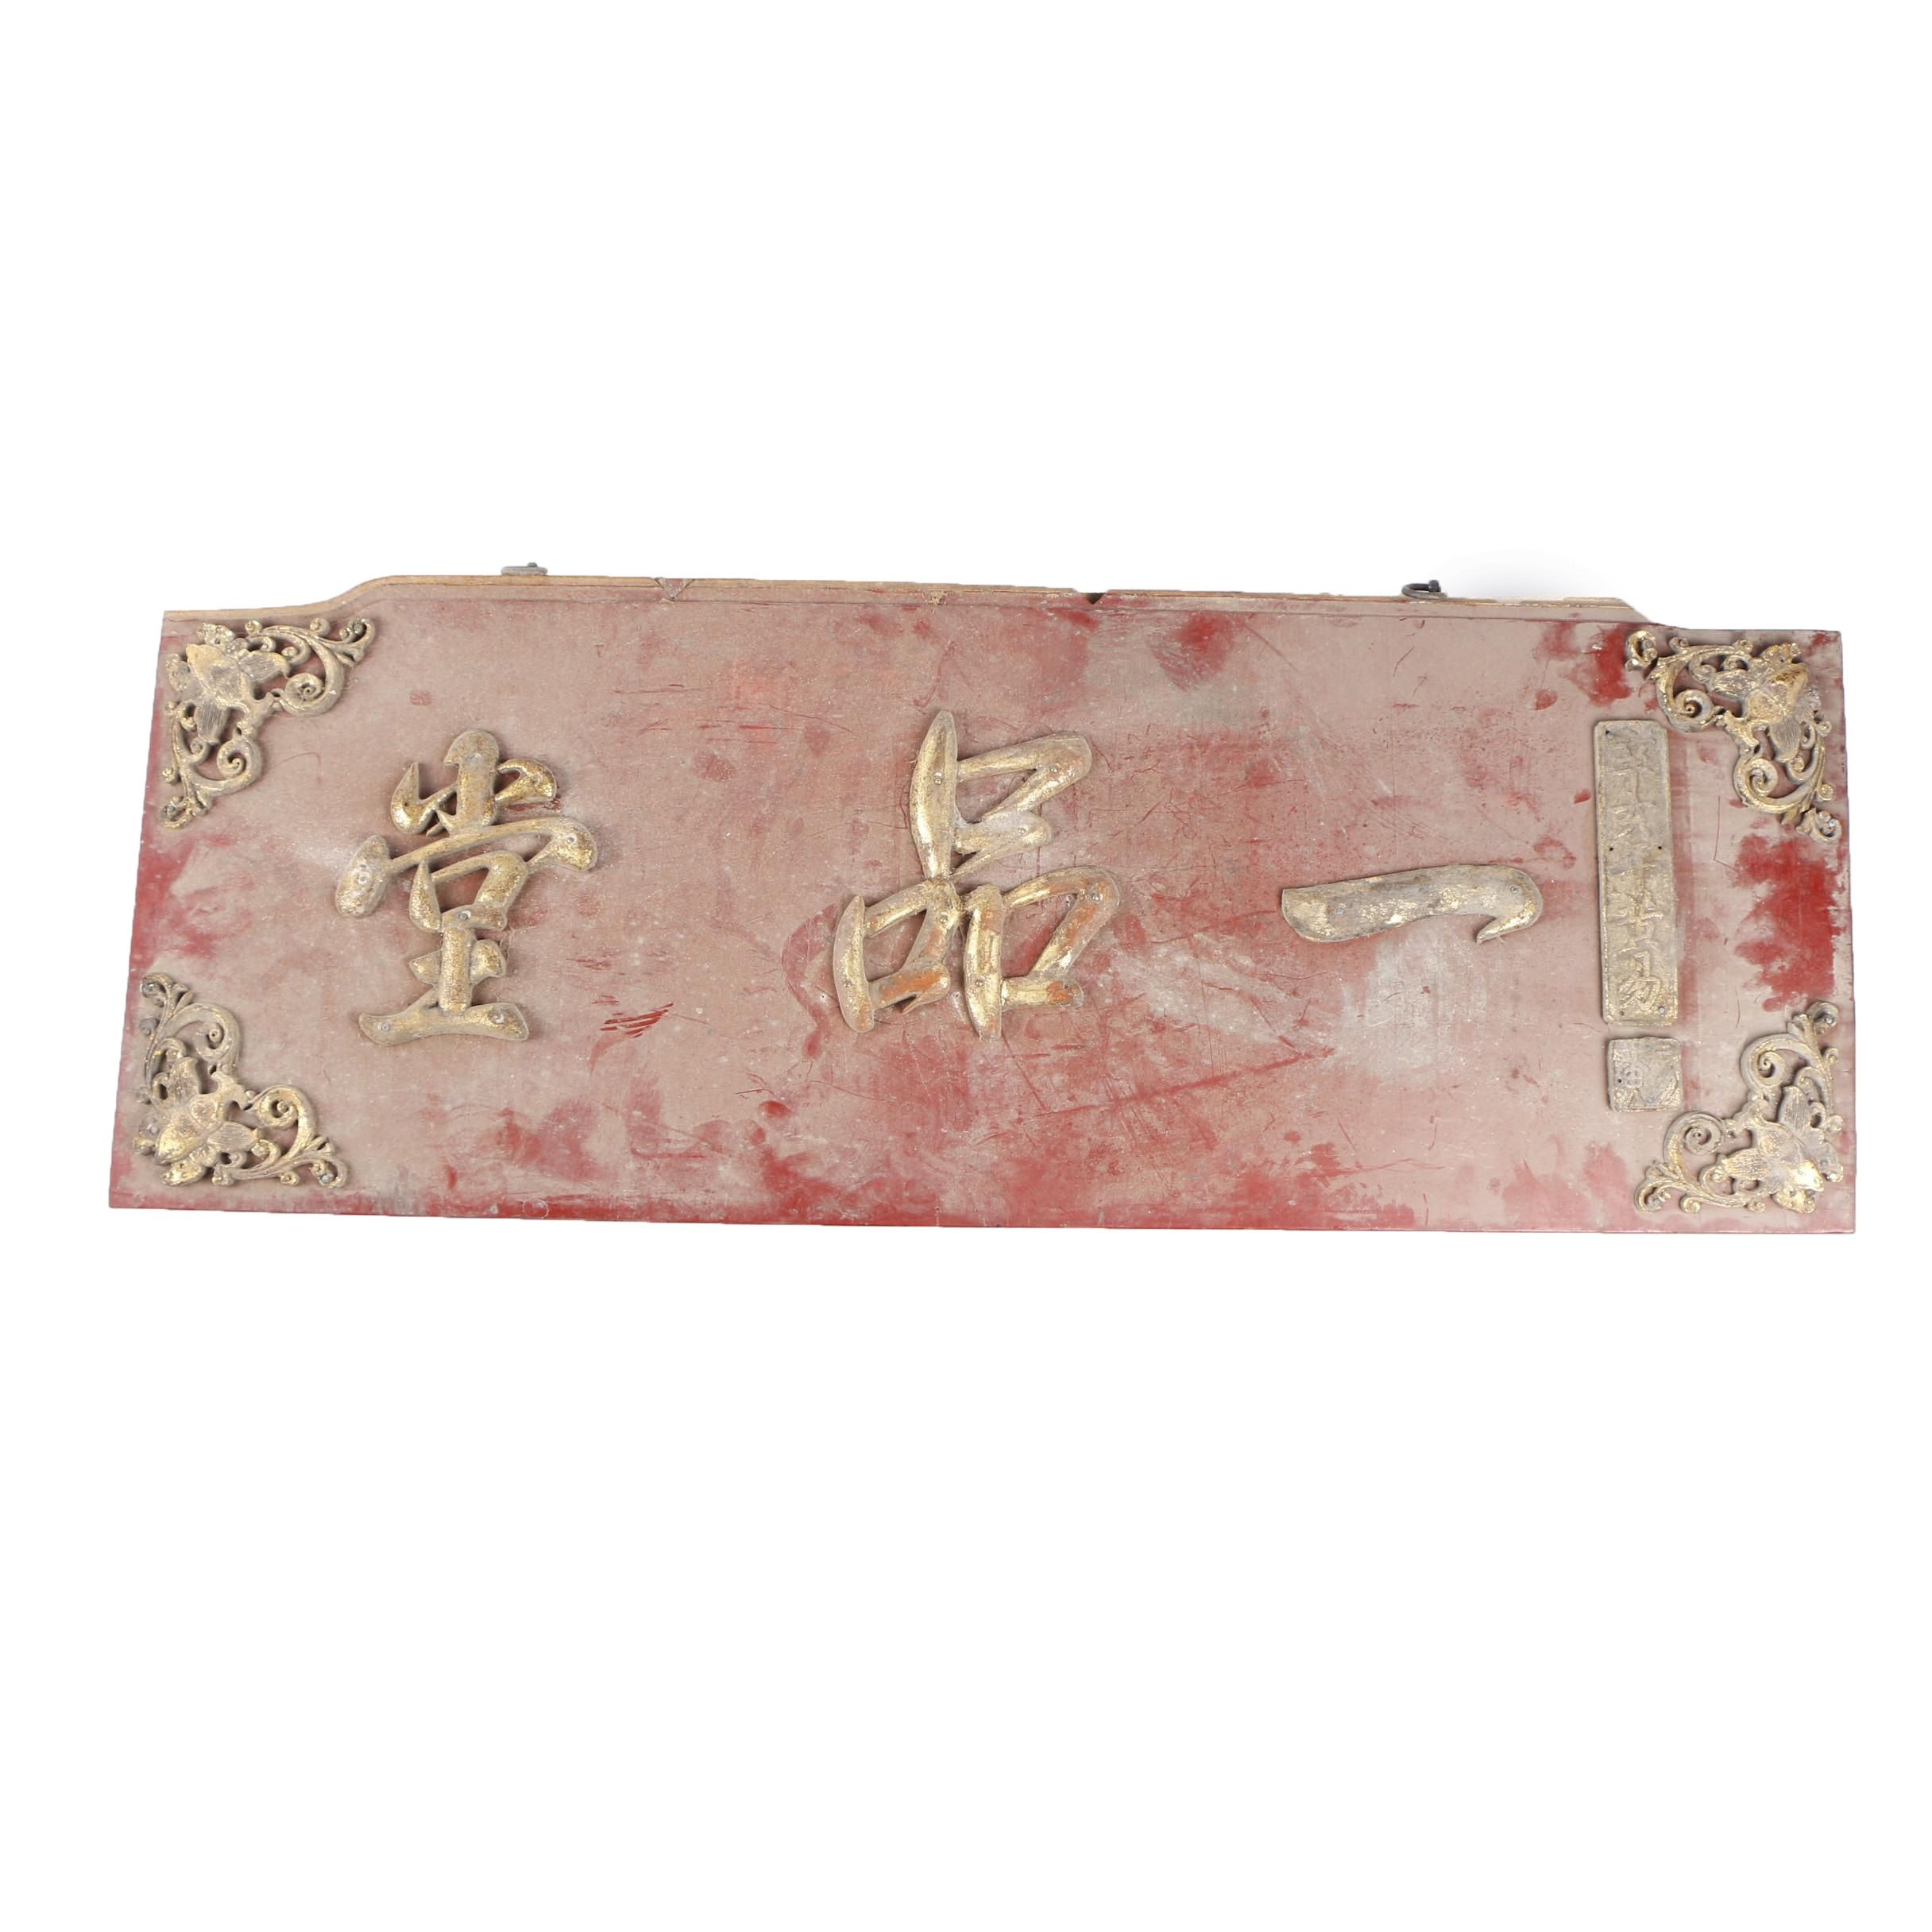 Antique Wooden Chinese Shop Sign